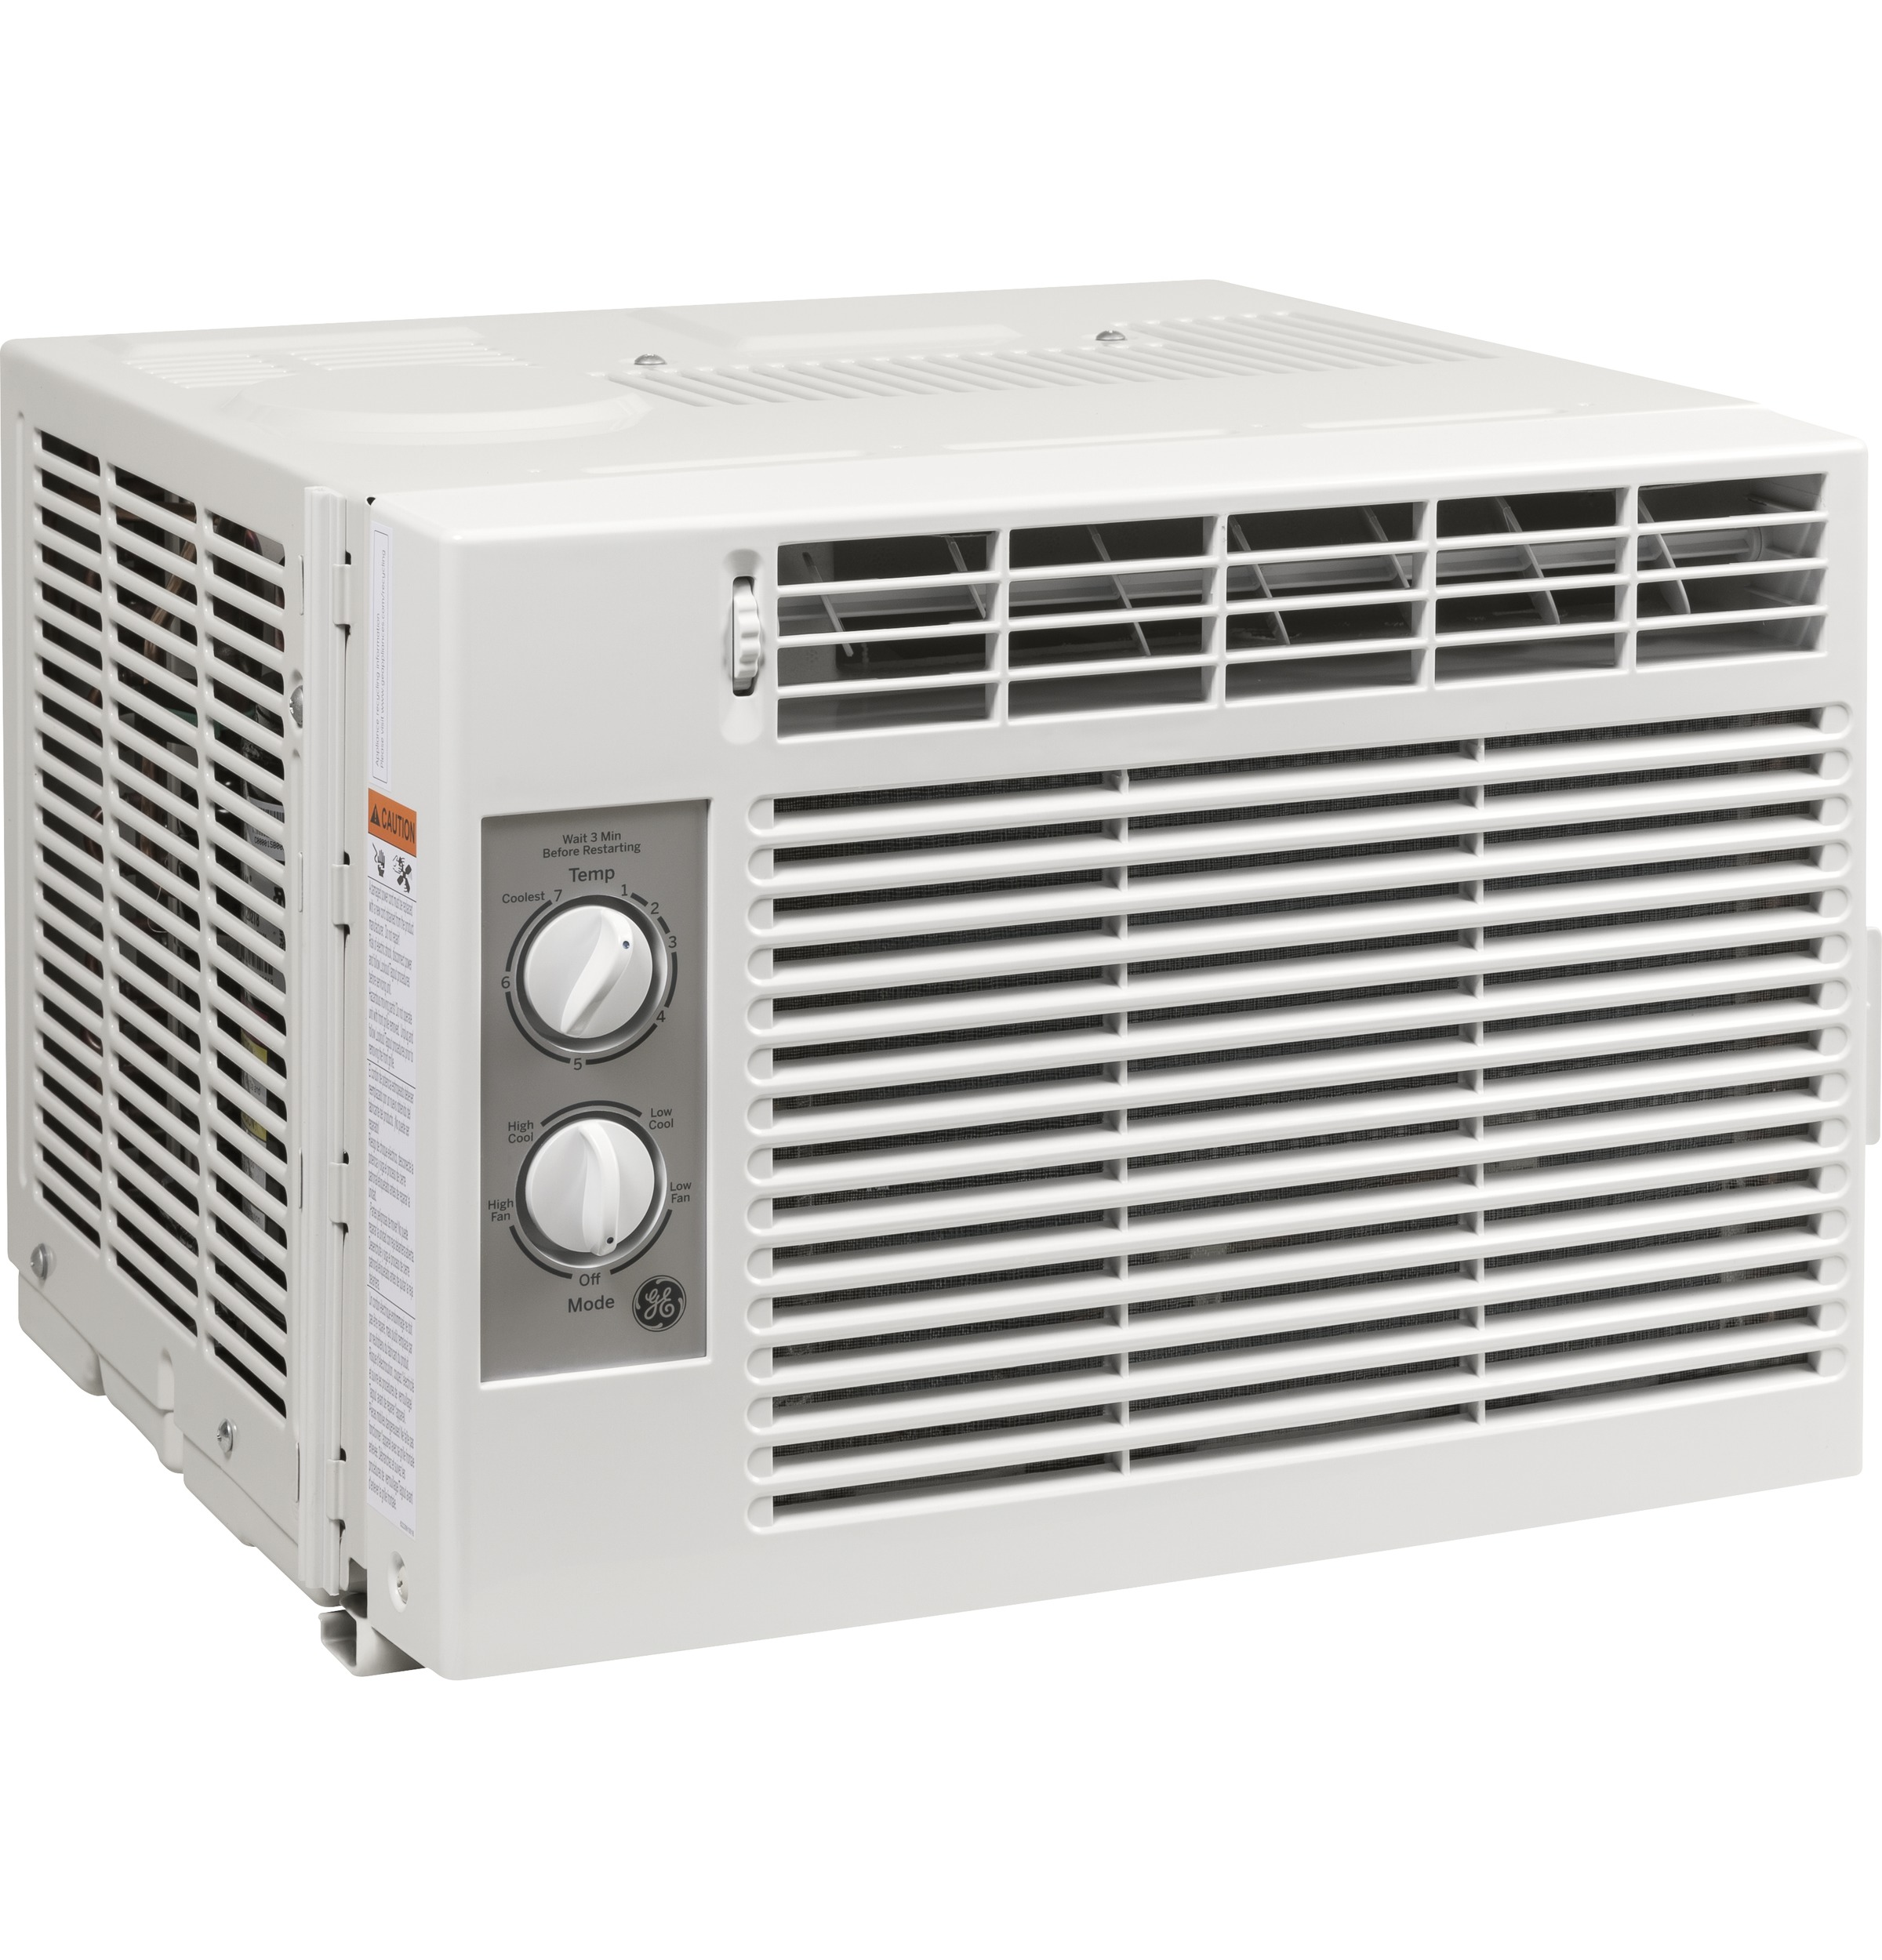 GE 5,000 BTU MECHANICAL AIR CONDITIONER, AET05LX